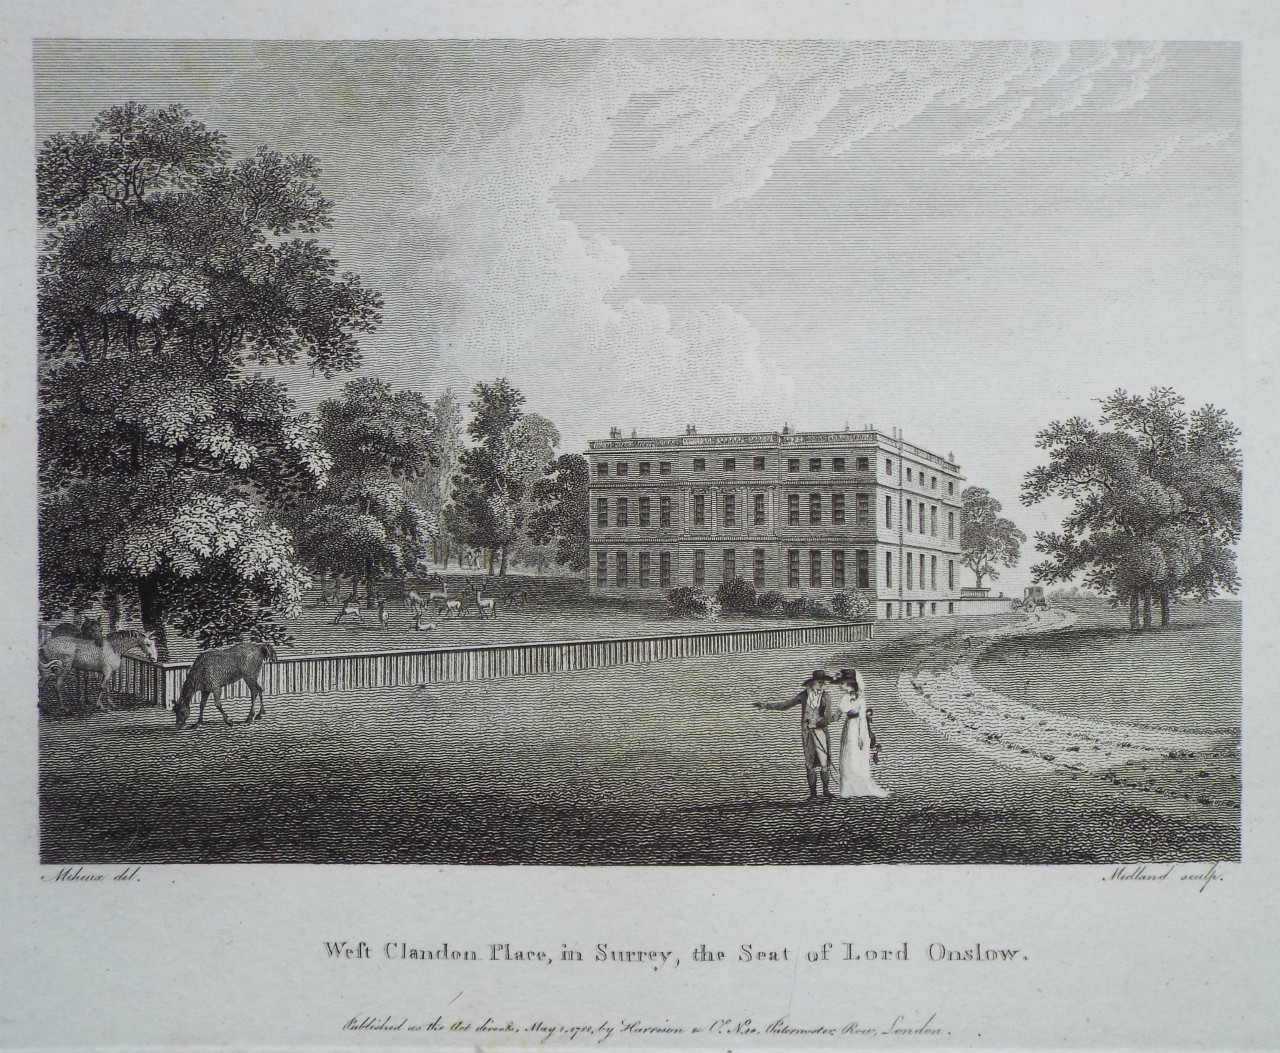 Print - West Clandon Place, in Surrey, the Seat of Lord Onslow. -